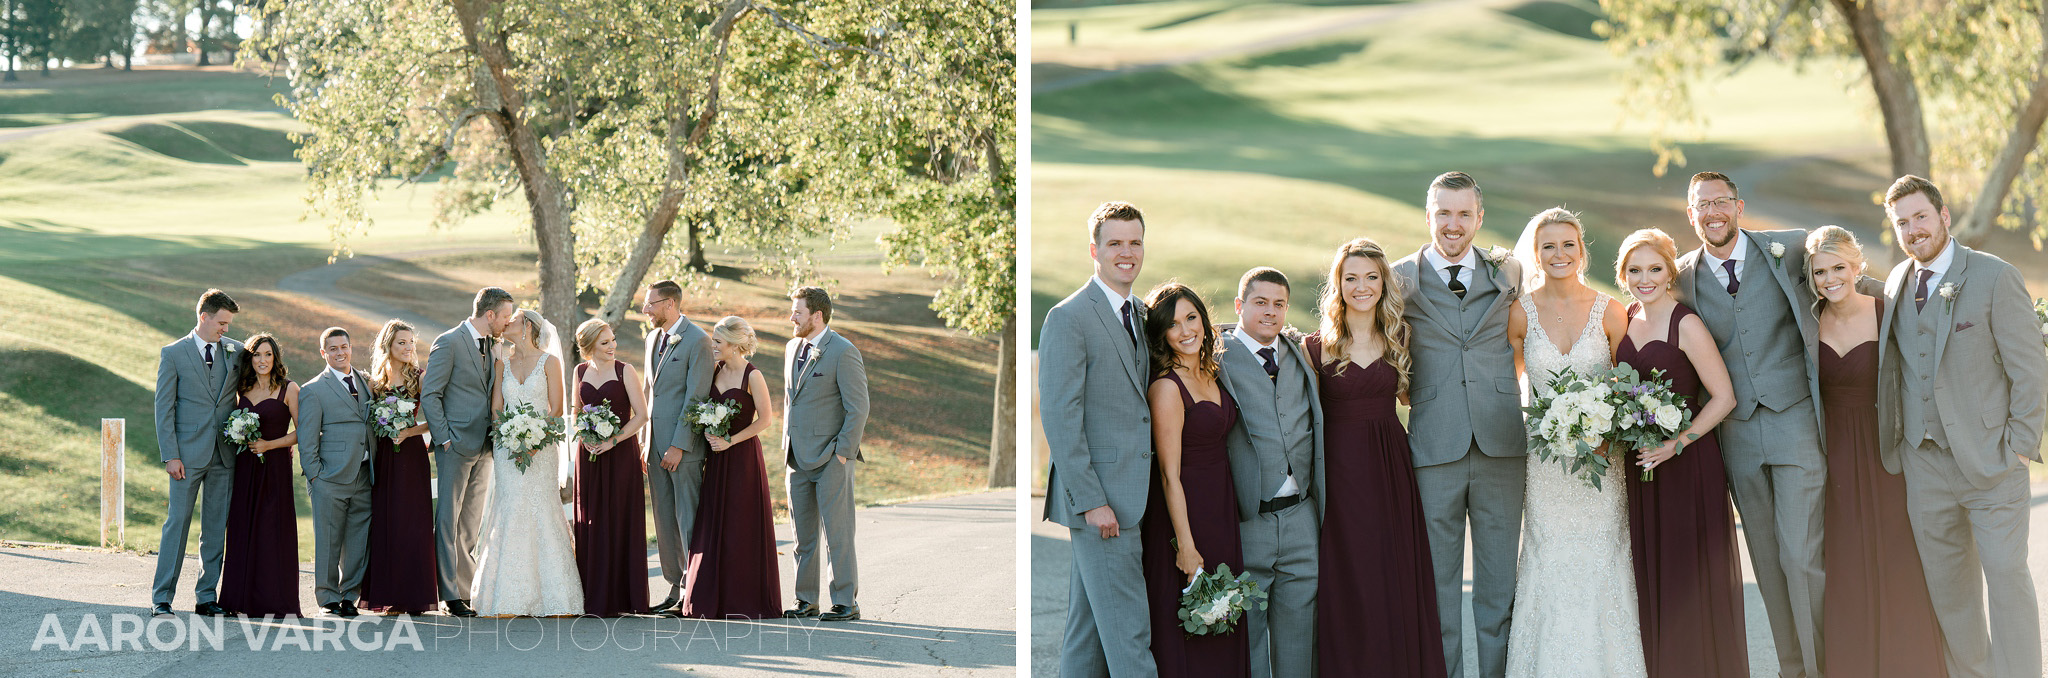 36 montour heights country club bridal party photos - Amy + Bill | Montour Heights Country Club Wedding Photos